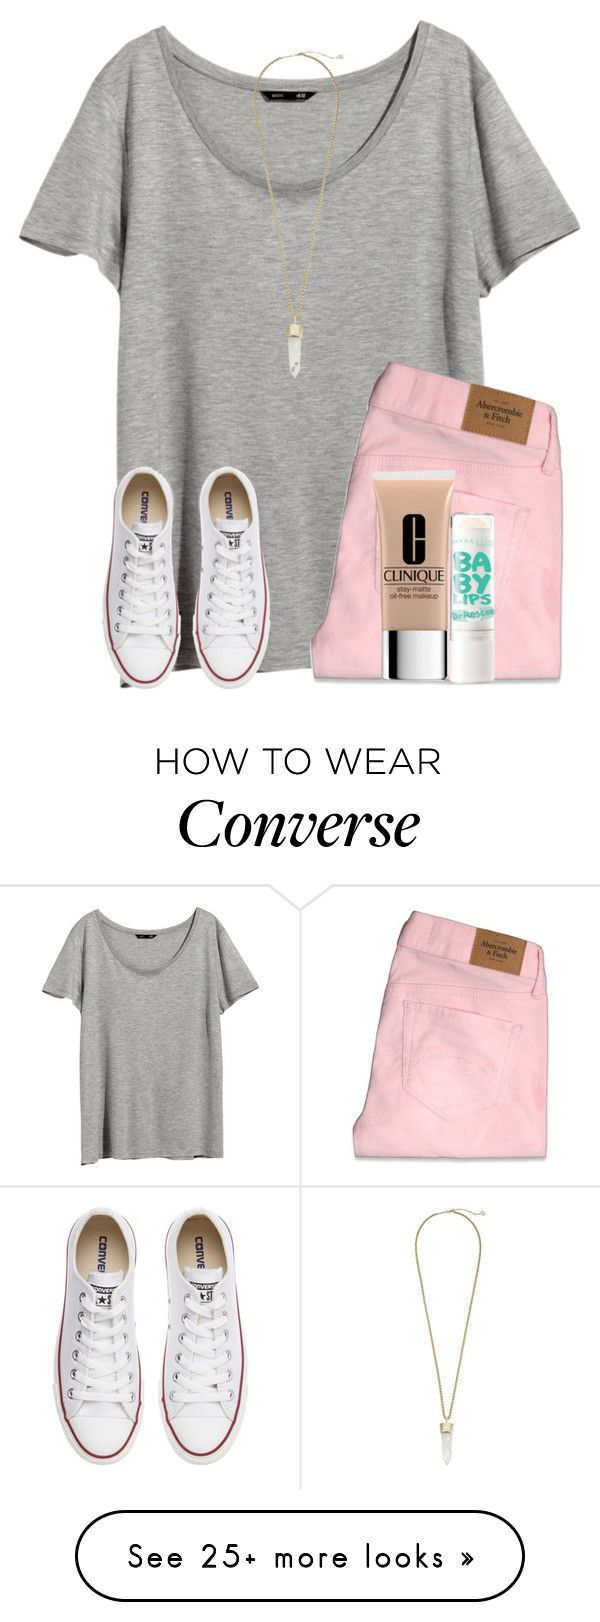 """read d pls!!!!"" by smileyavenuegirl on Polyvore featuring H&M, Abercrombie & Fitch, Converse, Clinique, Maybelline and Kendra Scott"